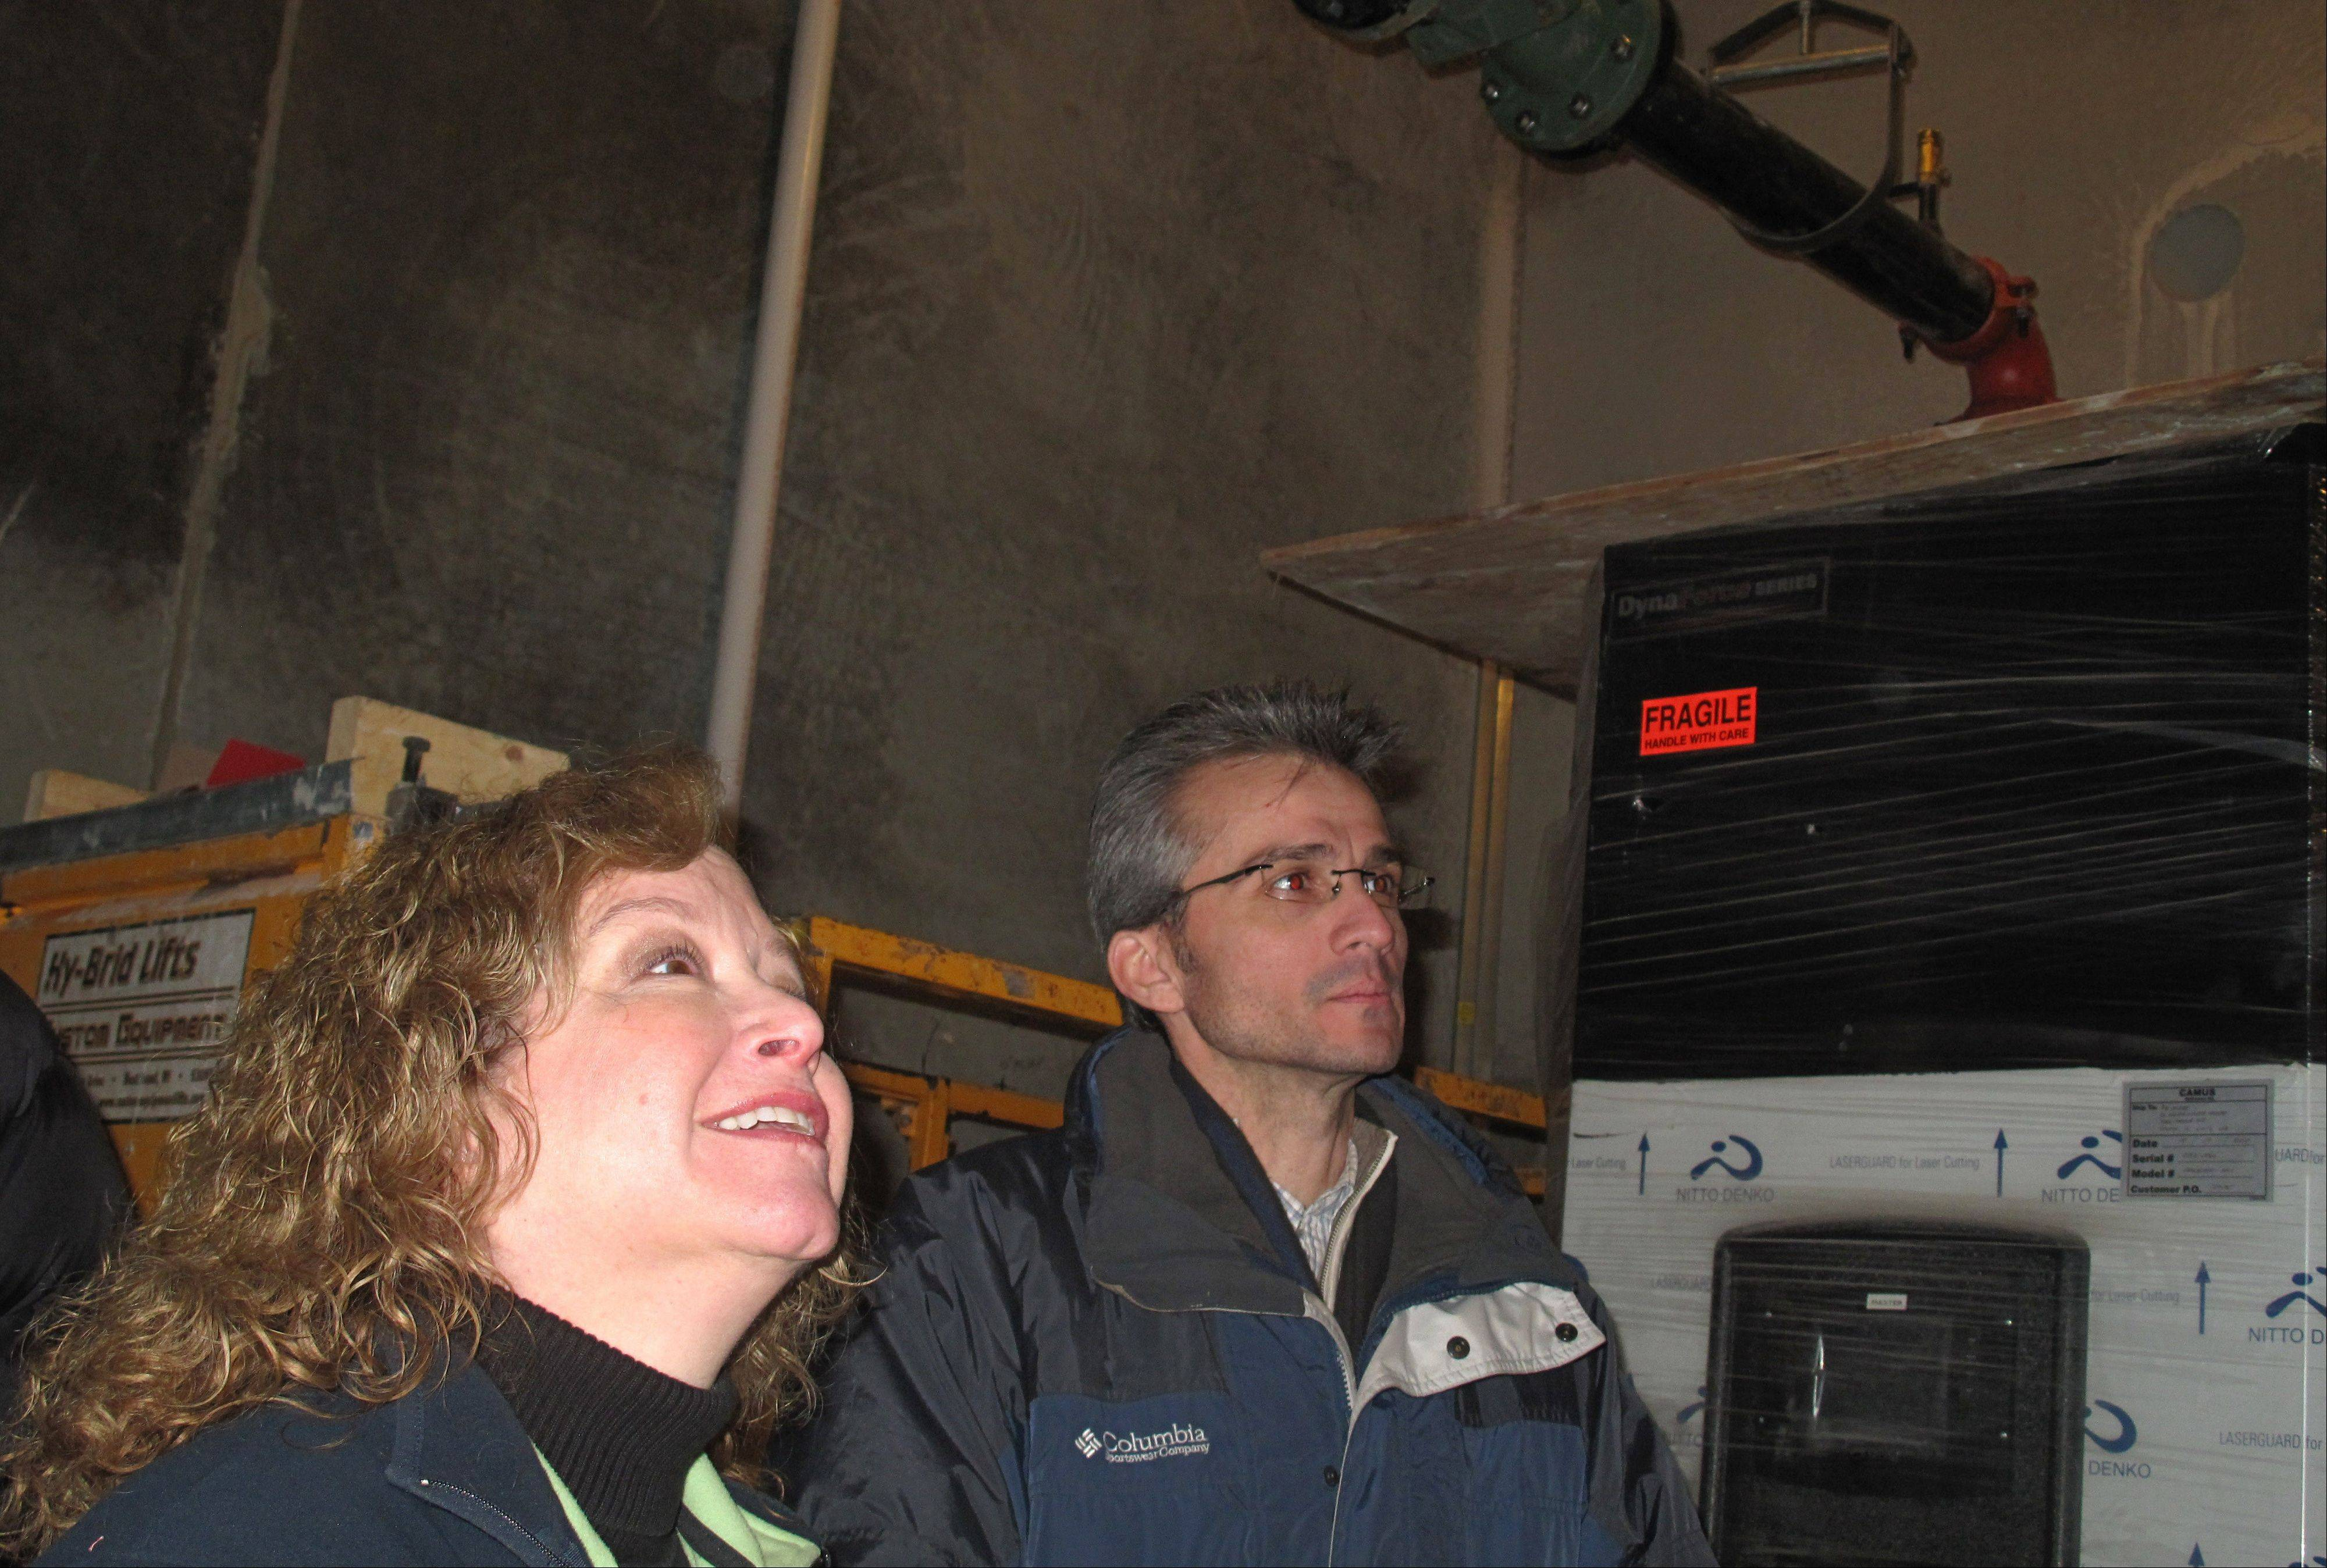 Carol Stream park board President Brenda Gramann and architect Frank Parisi examine the geothermal heating and cooling system Saturday at the Fountain View Recreation Center during a walk-through for parks officials. The system uses pumps to pull up underground air to assist in warming or cooling the building.